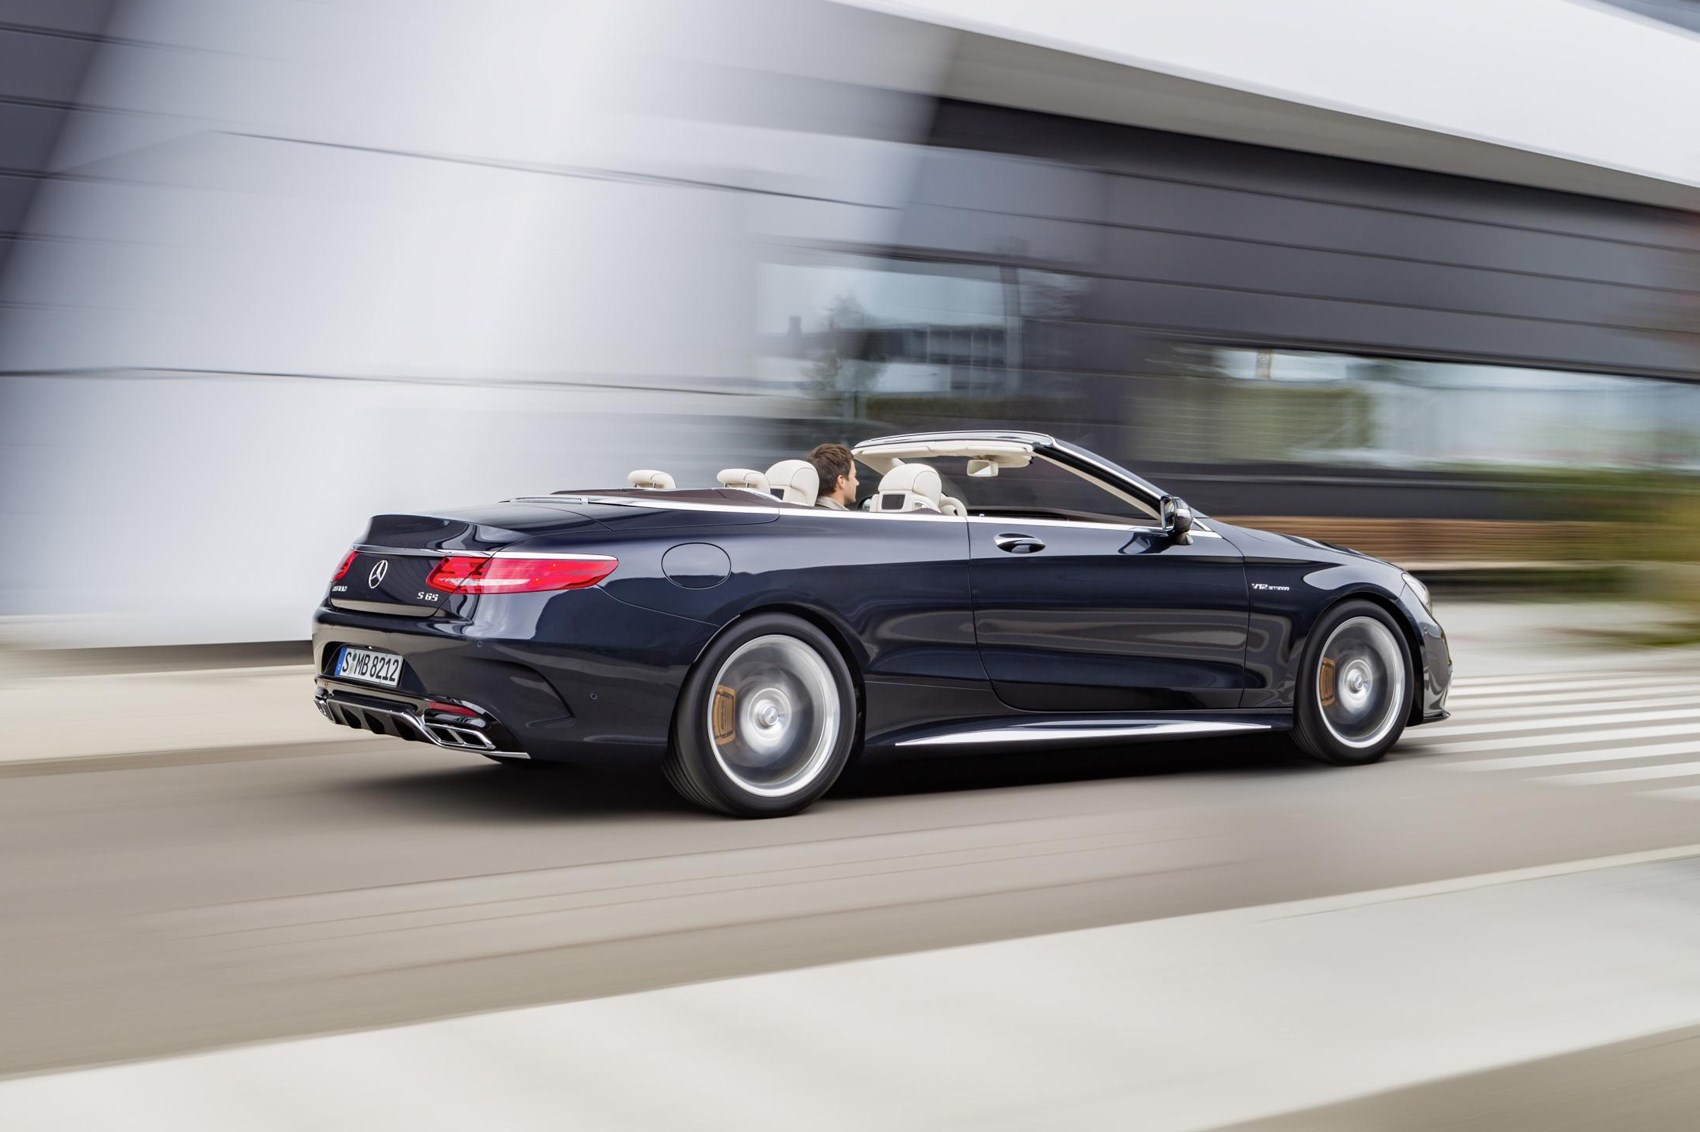 merc lifts the lid on 2016 mercedes amg s65 cabriolet by car magazine. Black Bedroom Furniture Sets. Home Design Ideas